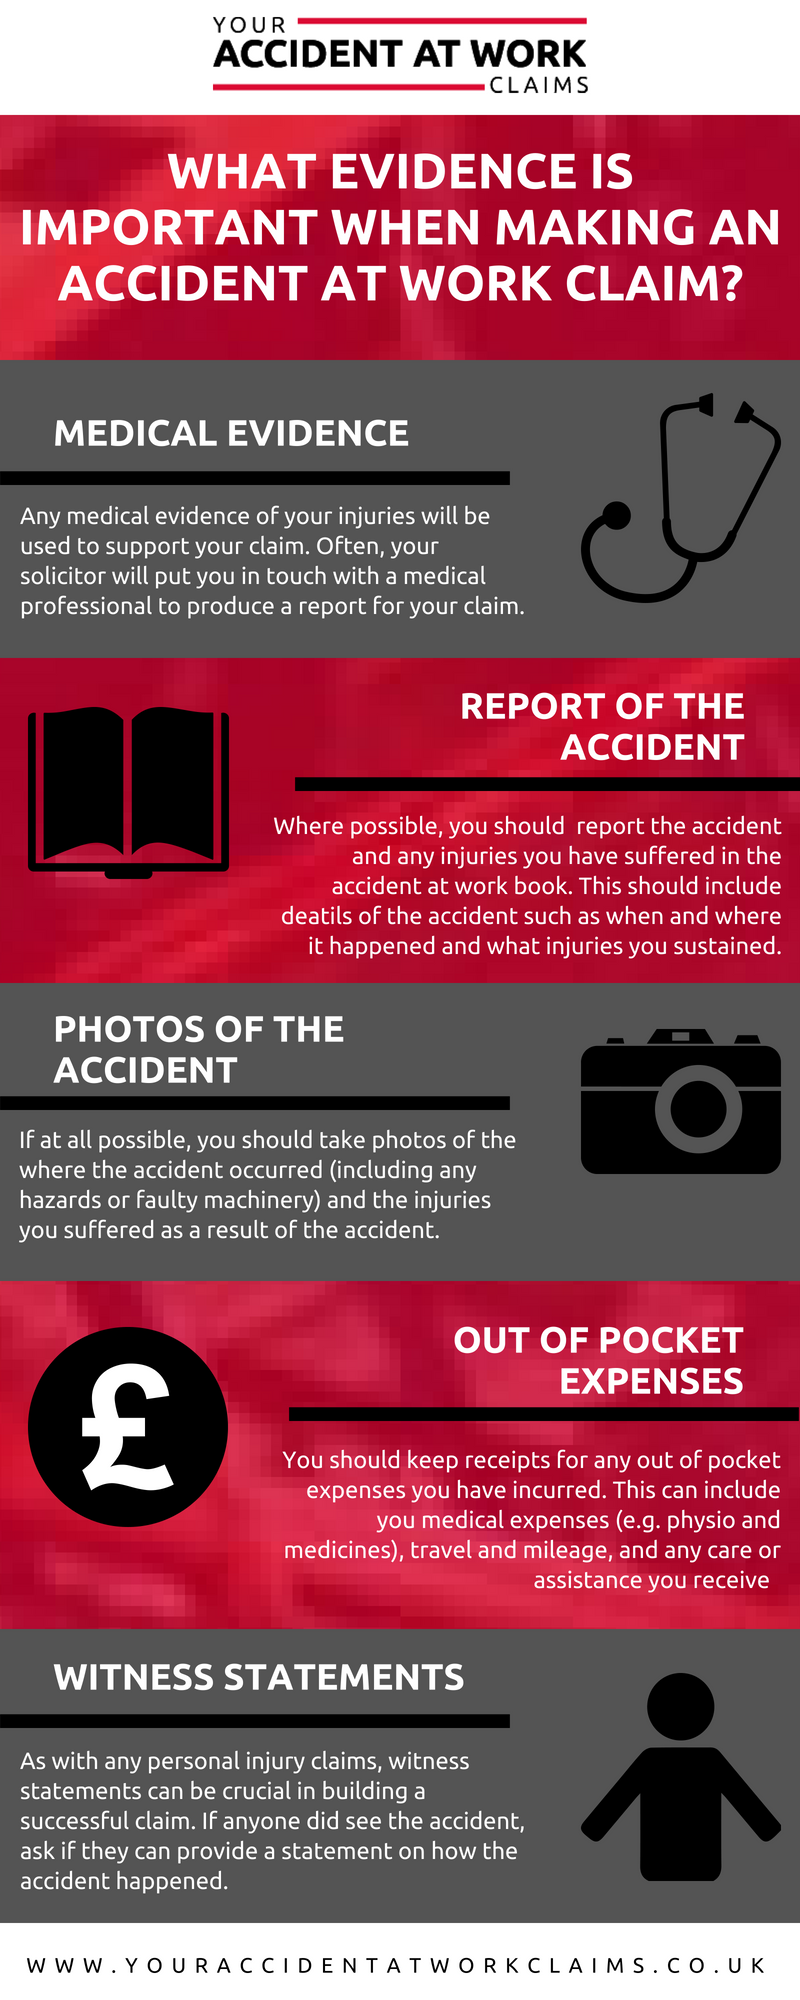 Infographic explaining important evidence for an accident at work claim